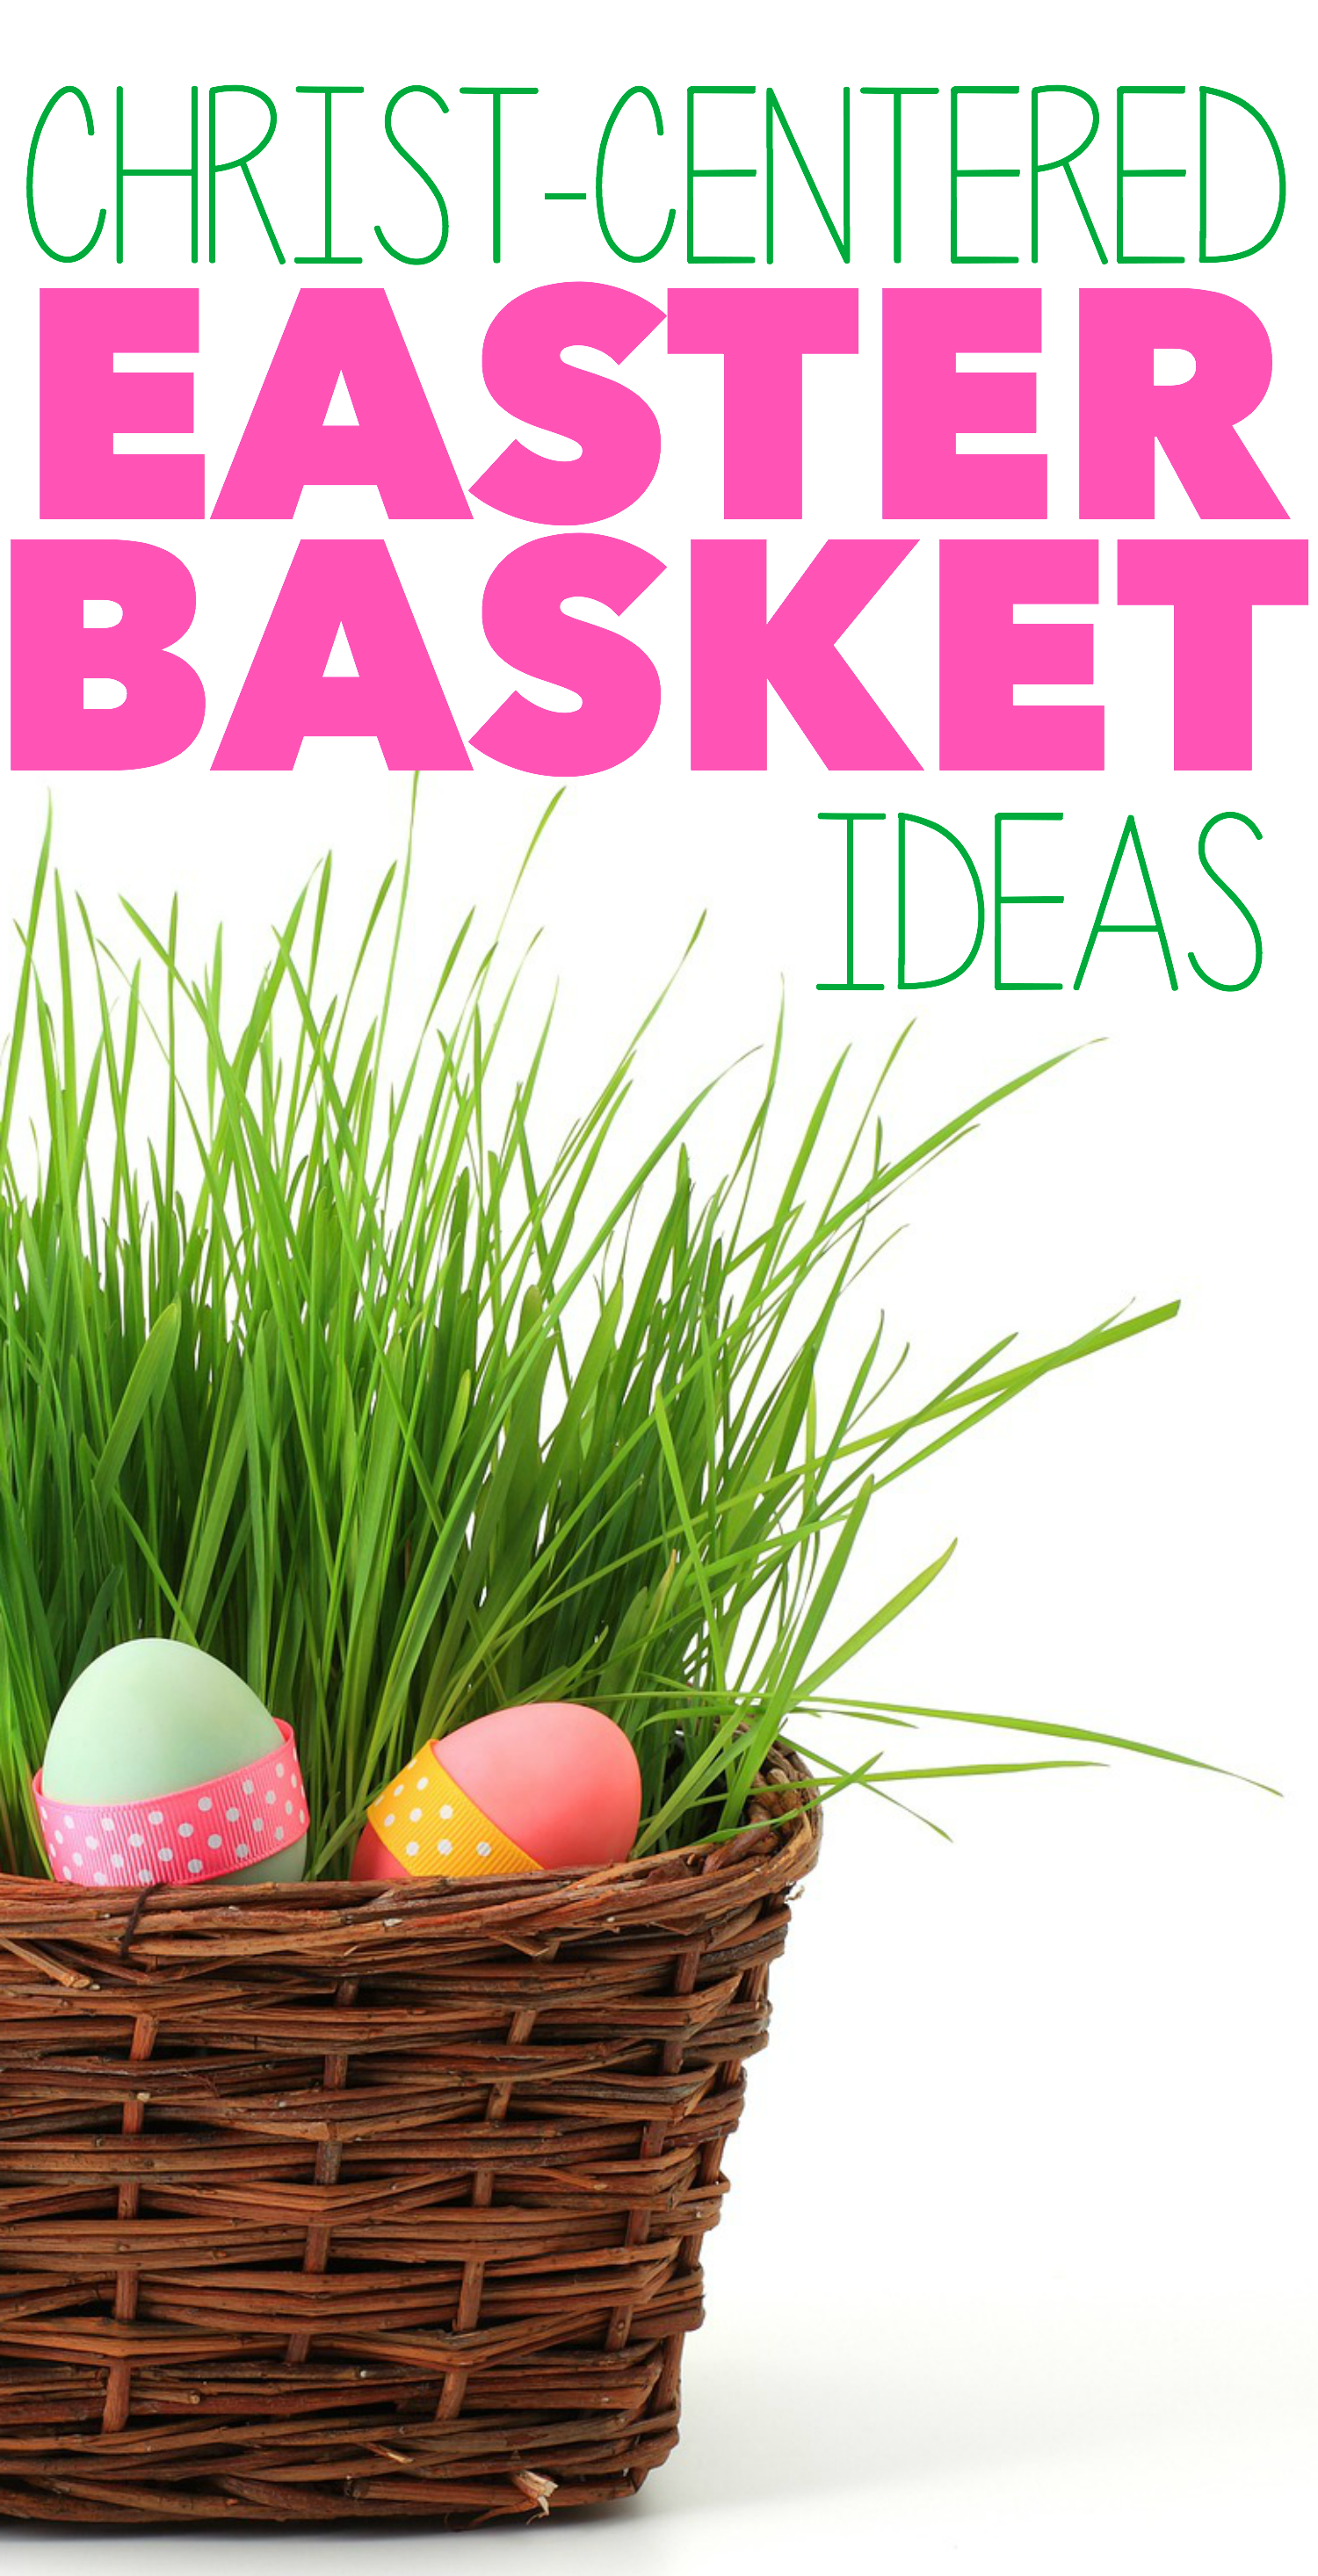 Christ centered easter basket ideas easter baskets easter and christ centered easter basket ideas negle Gallery